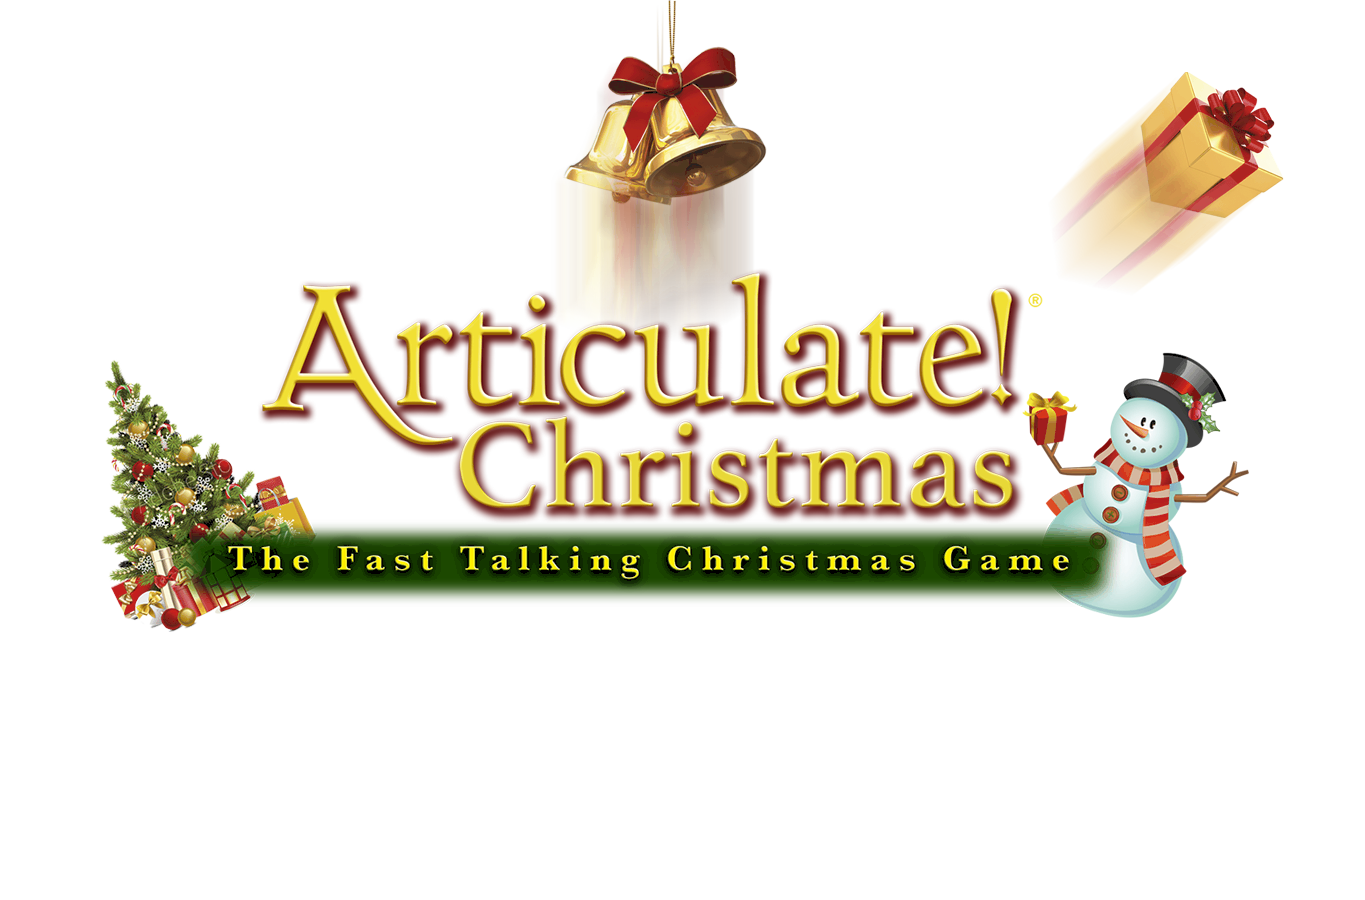 Articulate Christmas